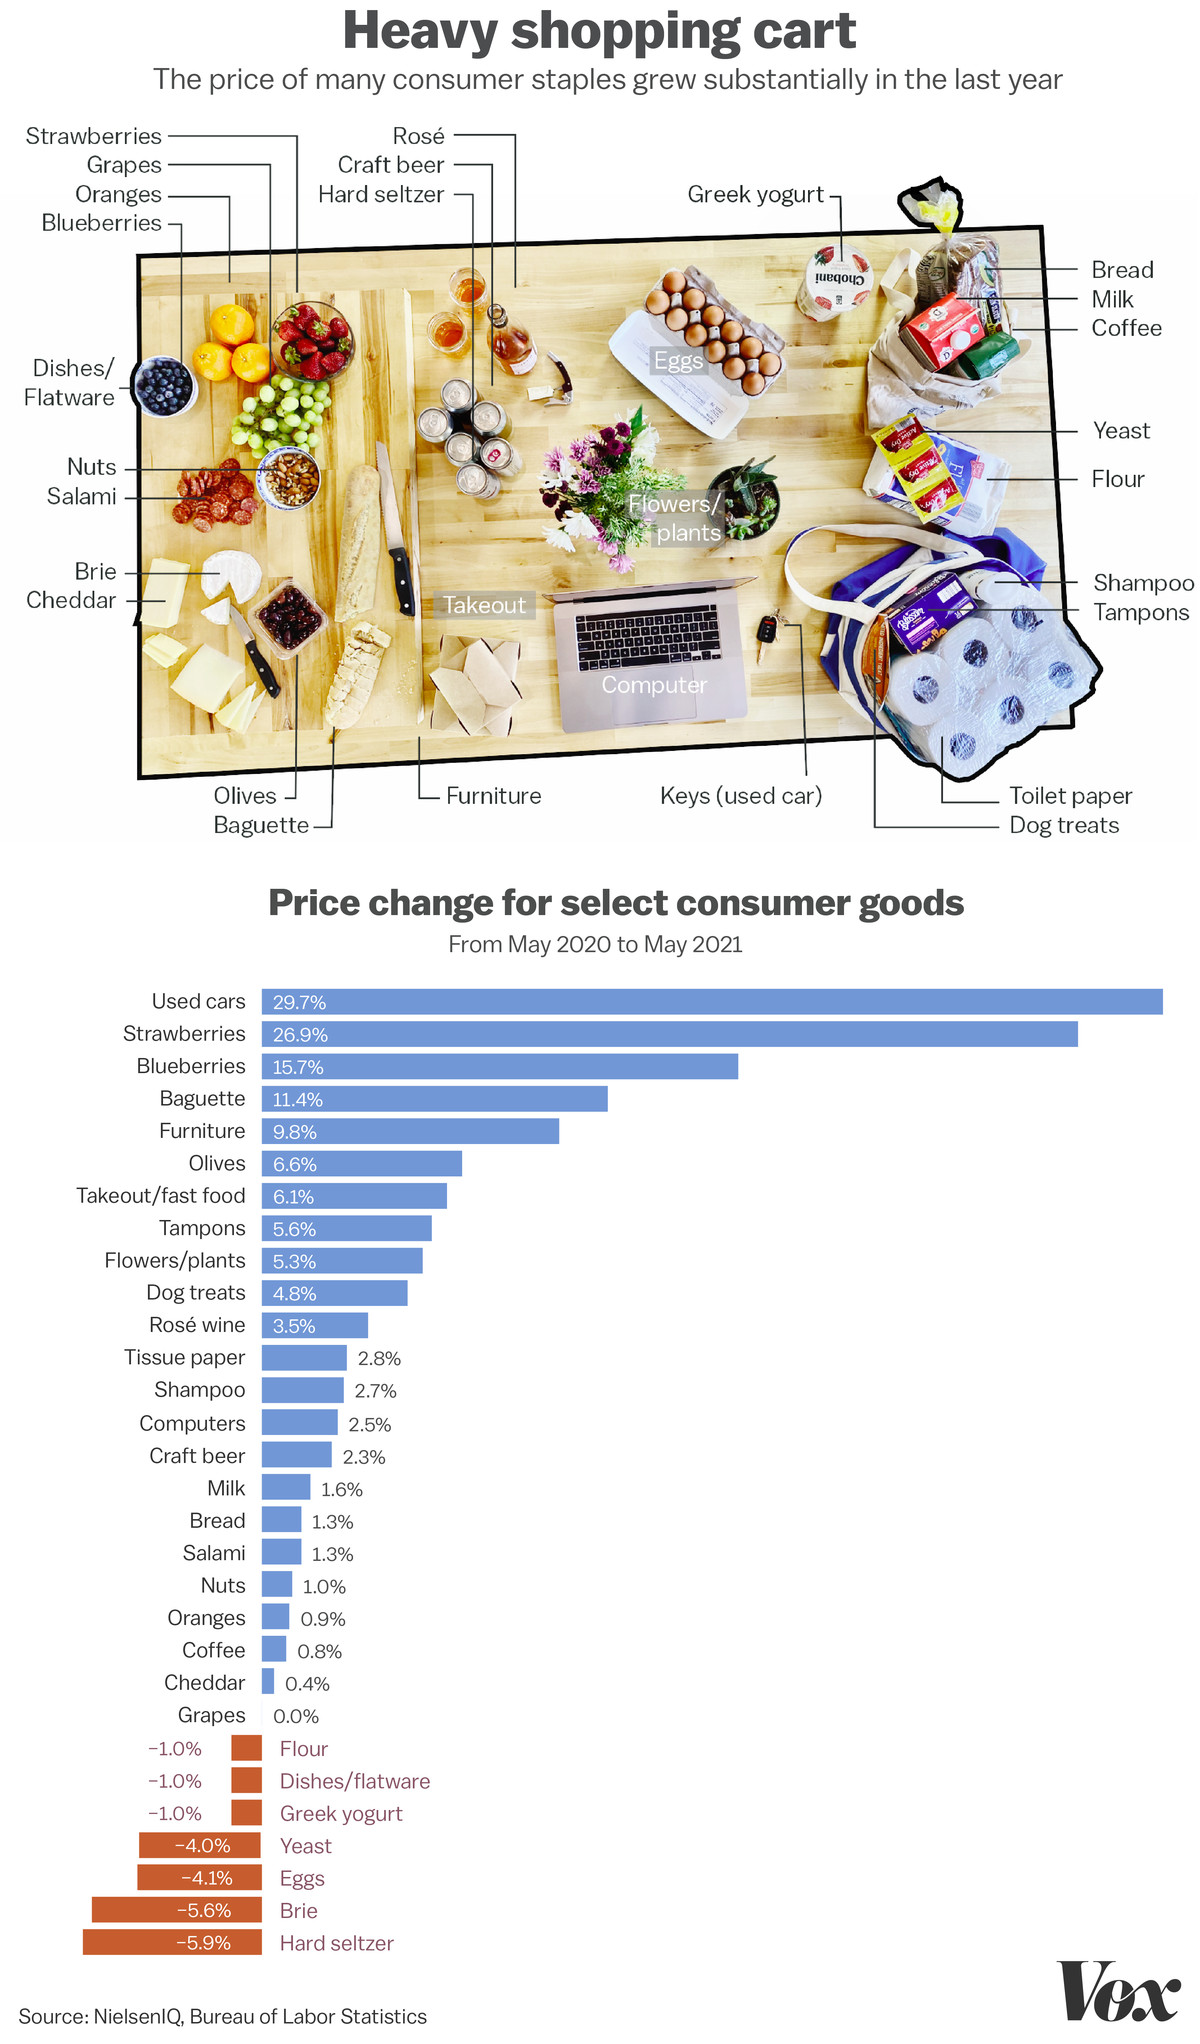 The price of many consumer goods grew substantially in the last year